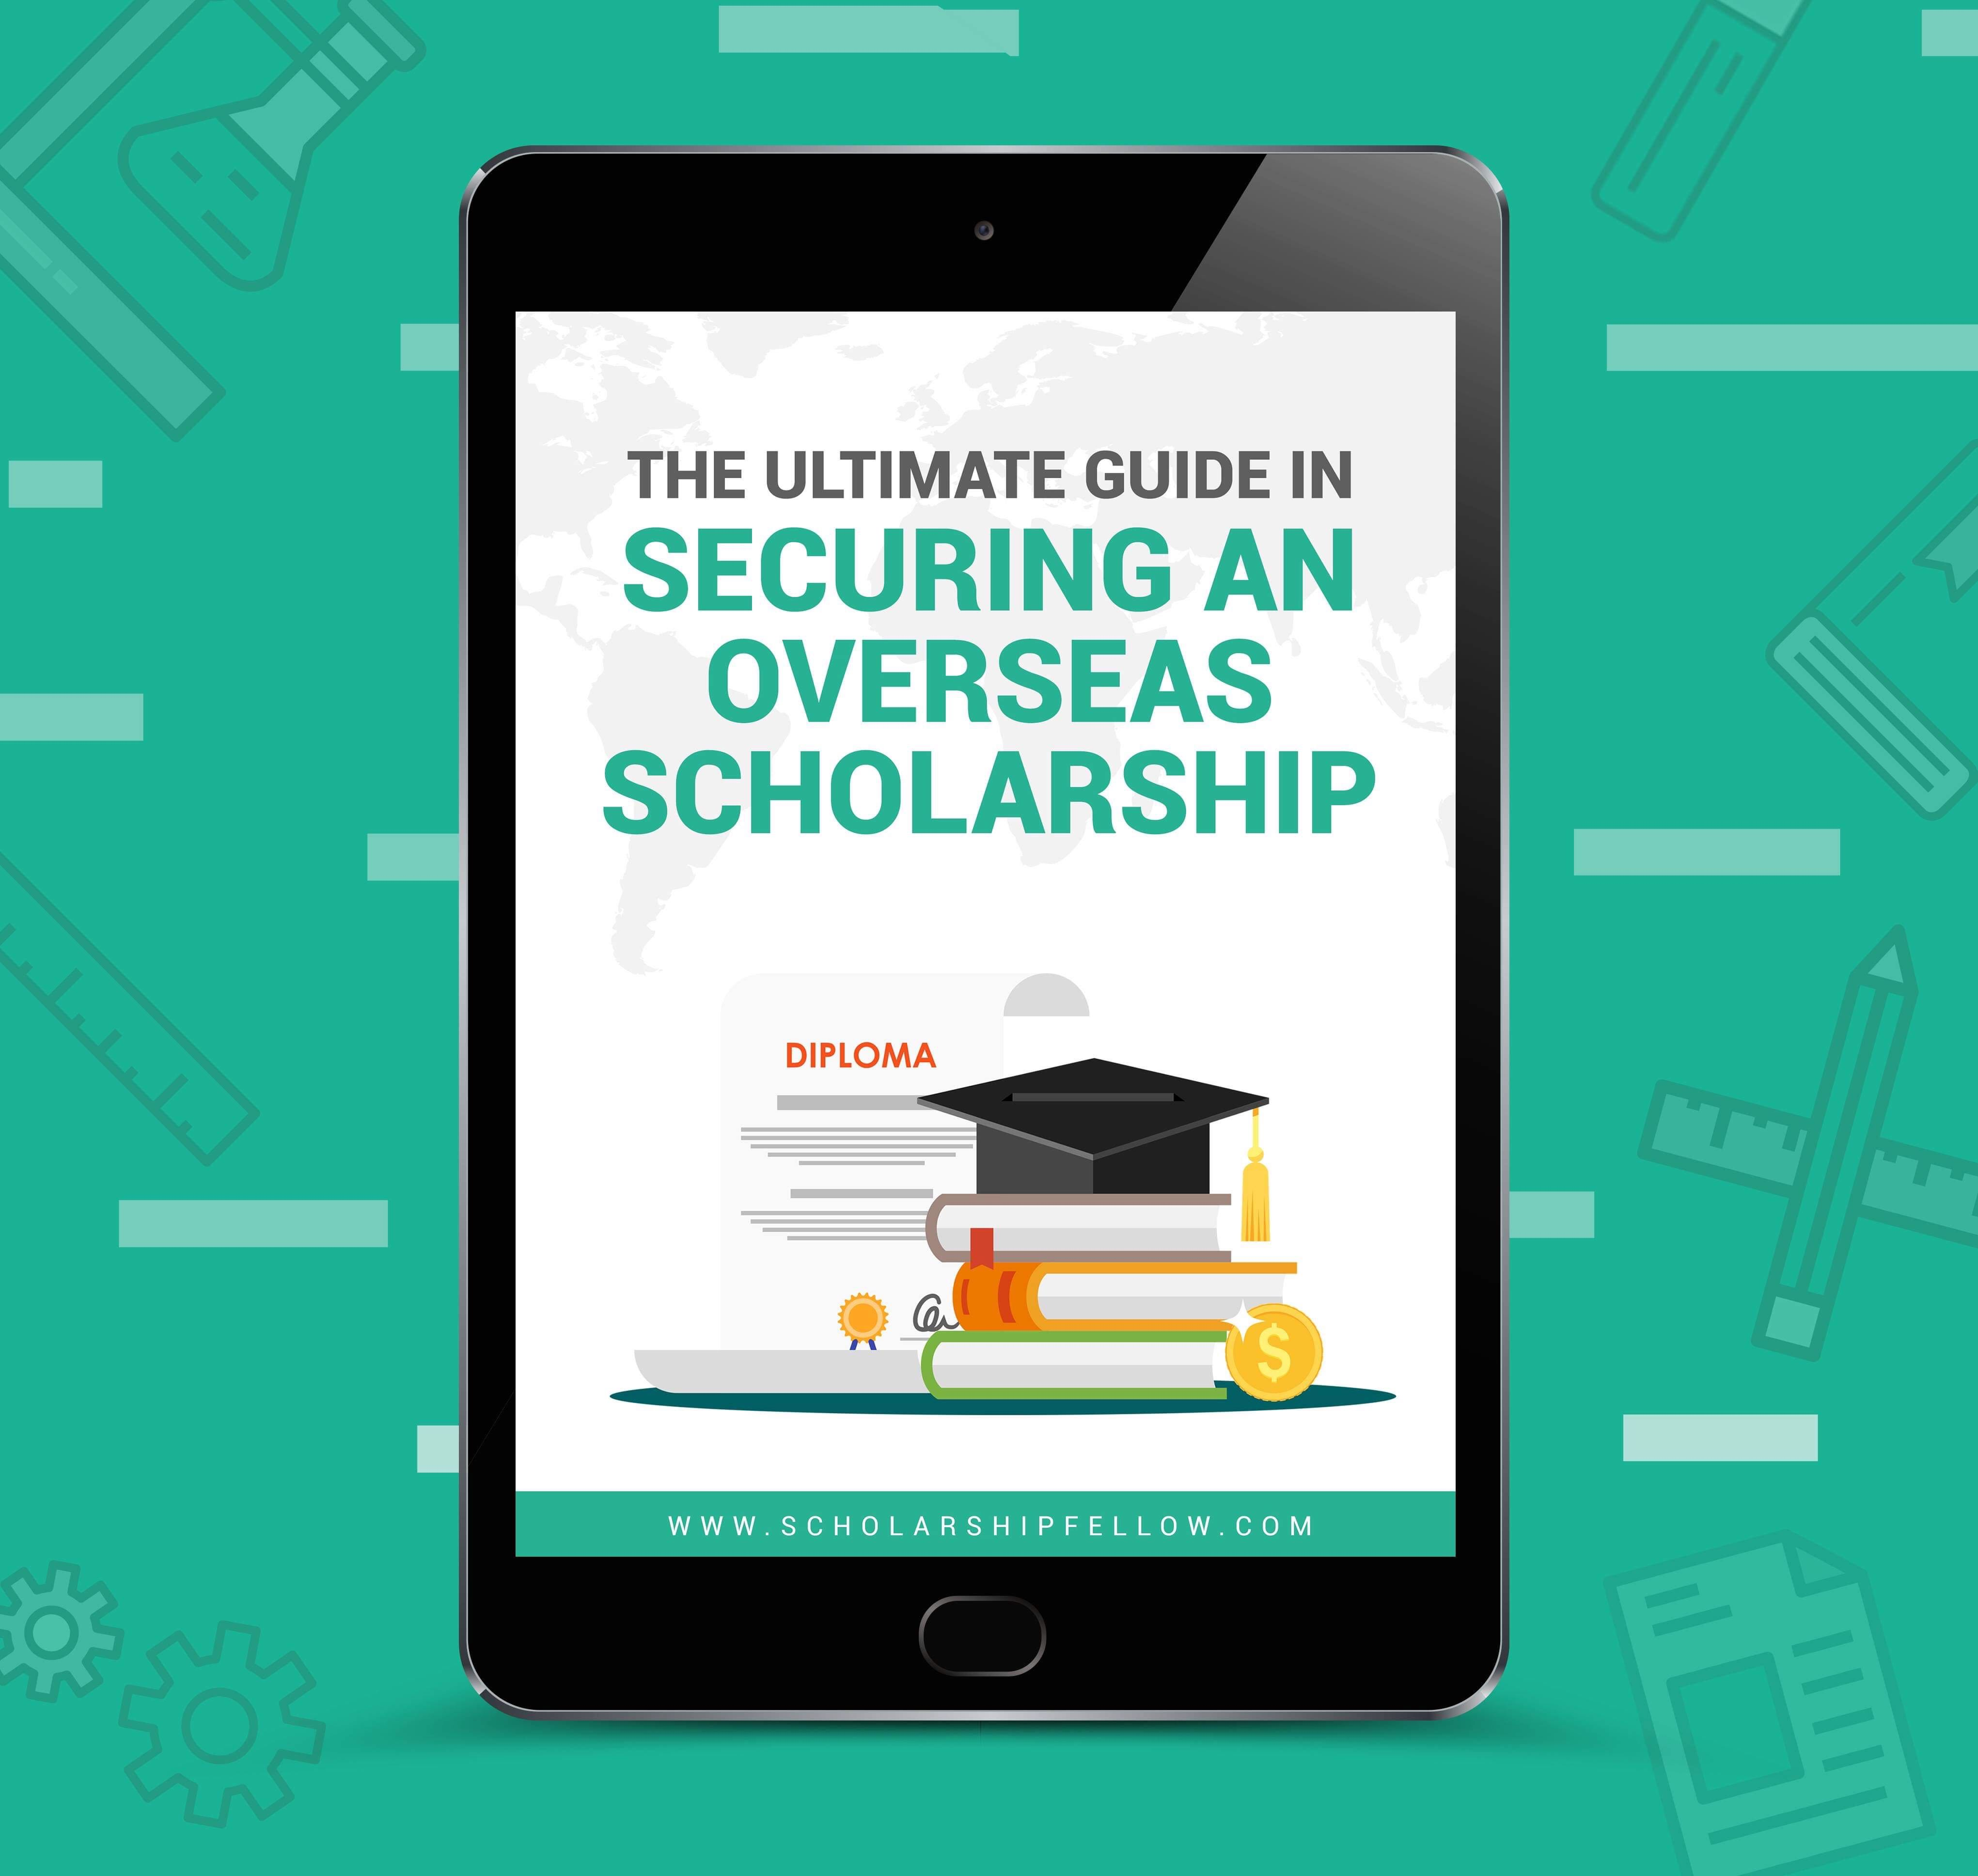 The Ultimate Guide in Securing an Overseas Scholarship eBook